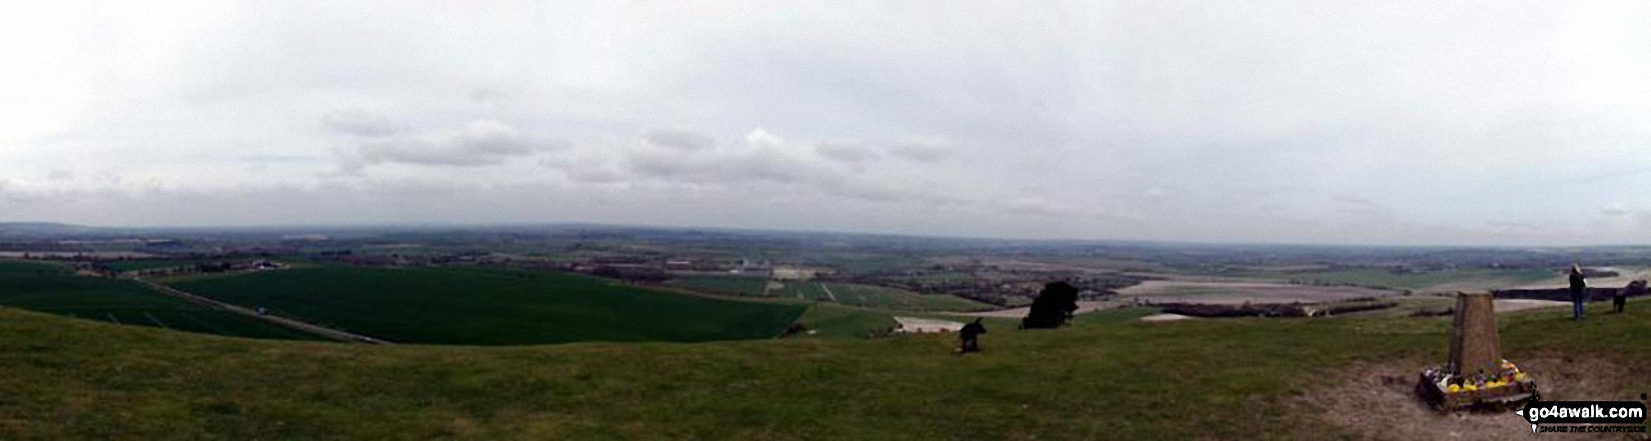 The view from the summit of Ivinghoe Beacon